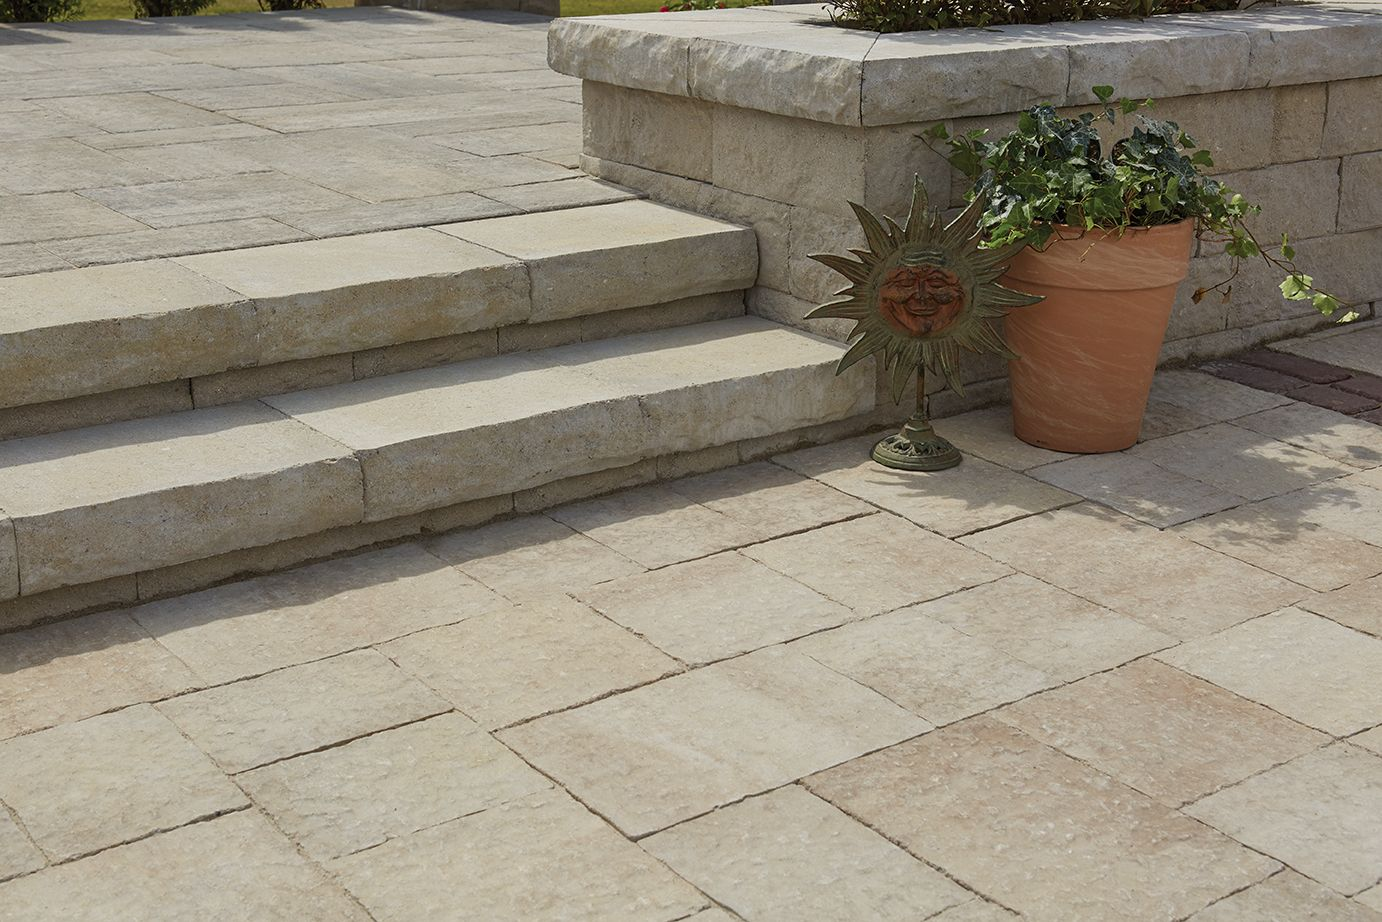 Rockton S Extended 18 X 13 Dimensions Makes An Elegant Wall Coping Or Seat While Delivering A Le Solution For Landscape Elevation Changes